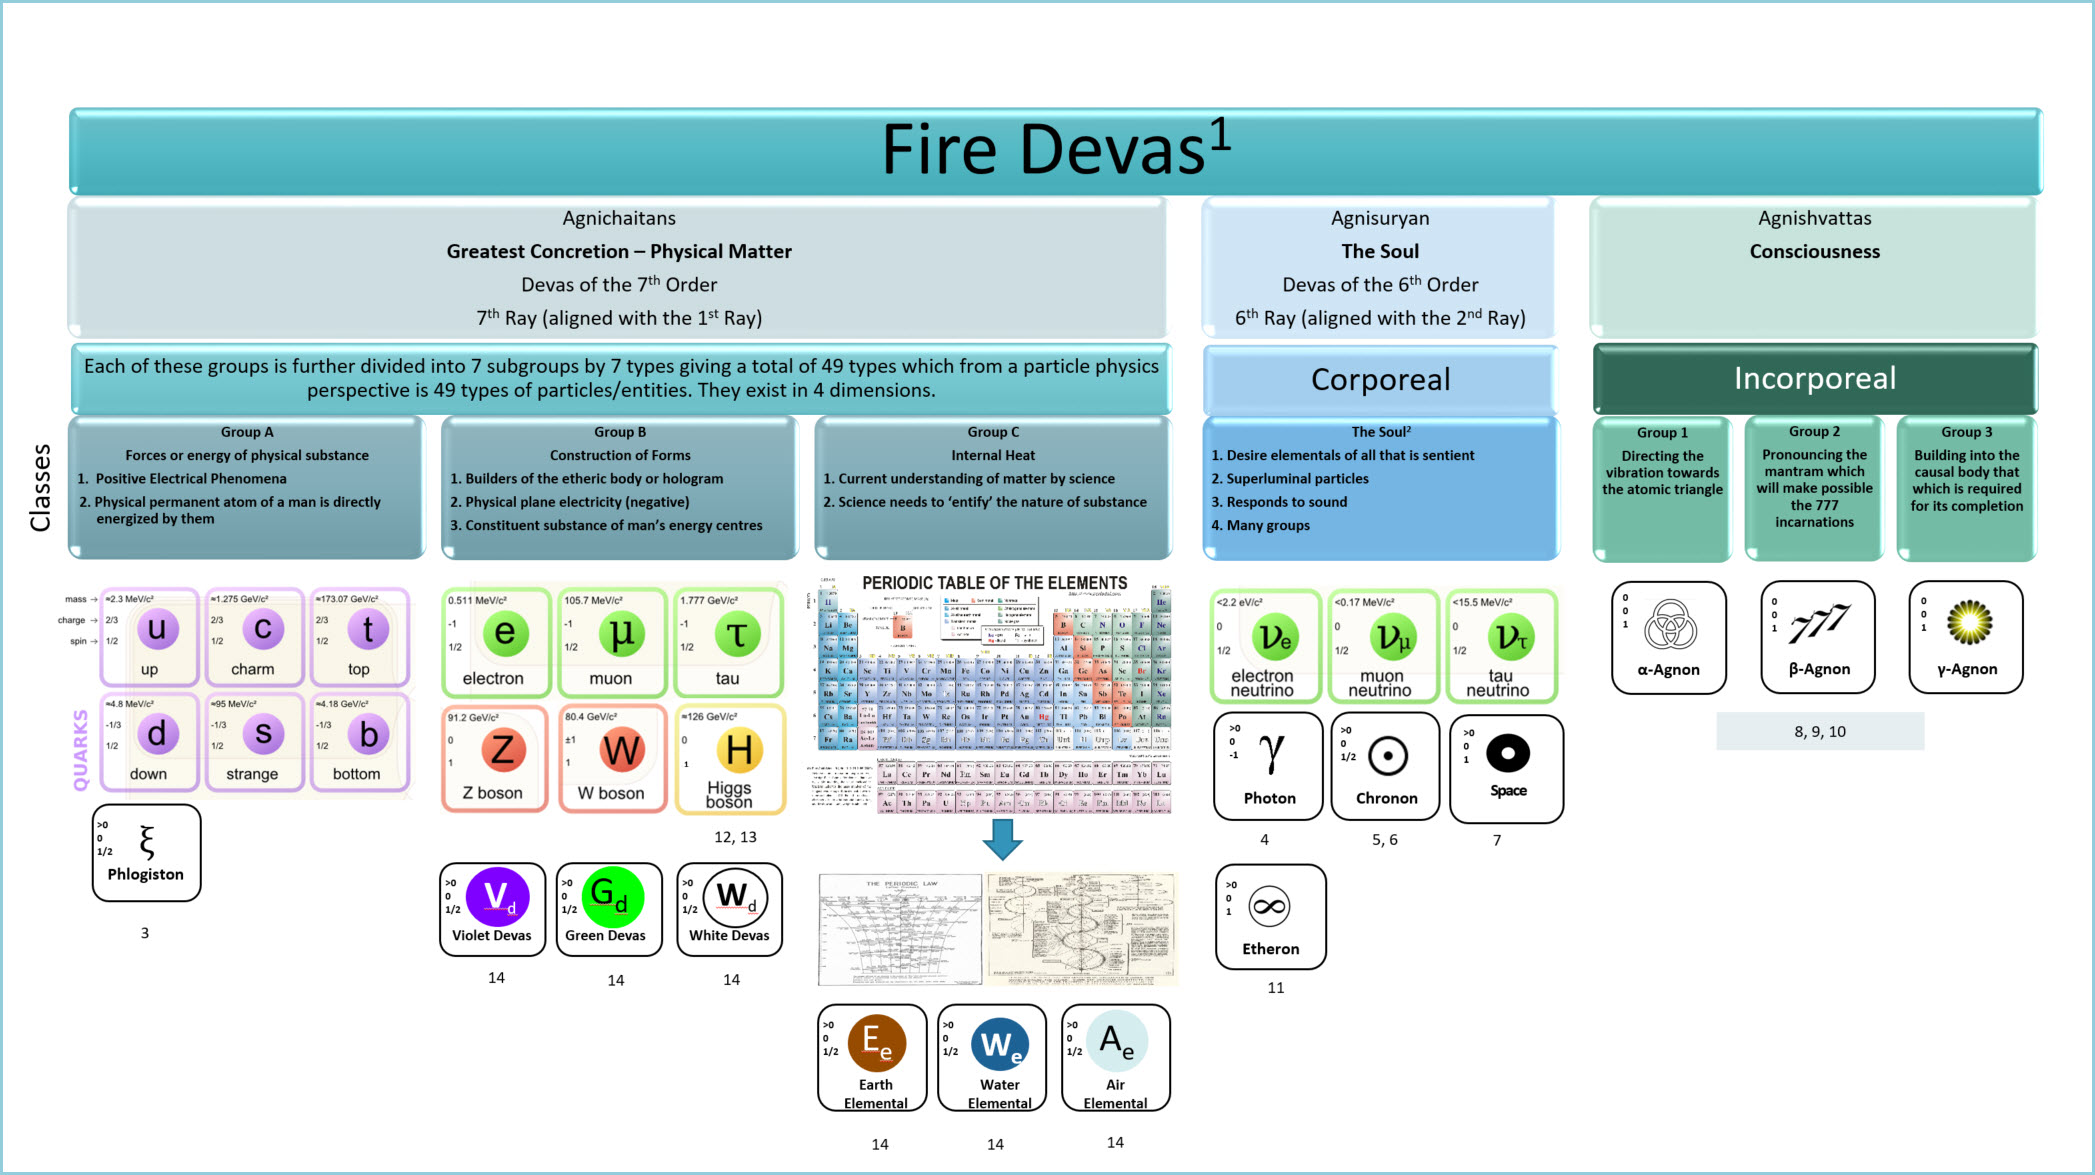 Fire Devas - A New Classification of Particles, and Periodic Table